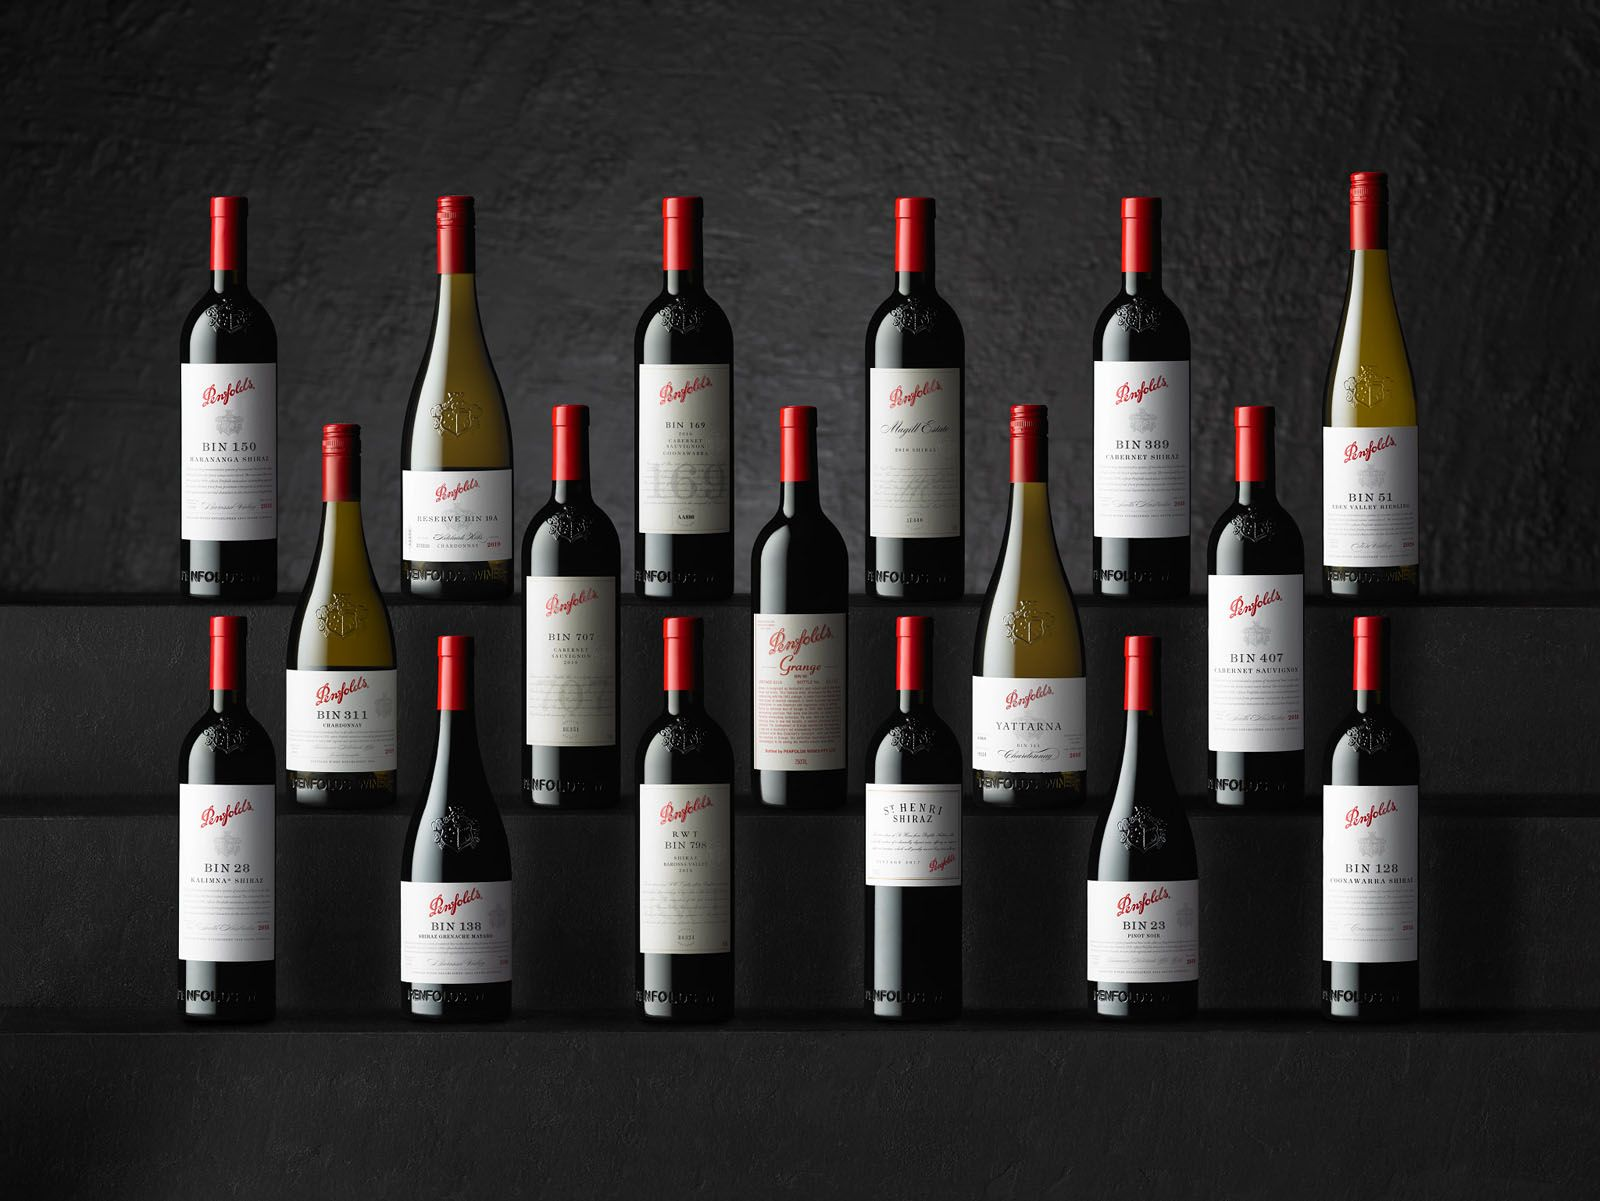 What to Expect From The 2020 Penfolds Wine Collection